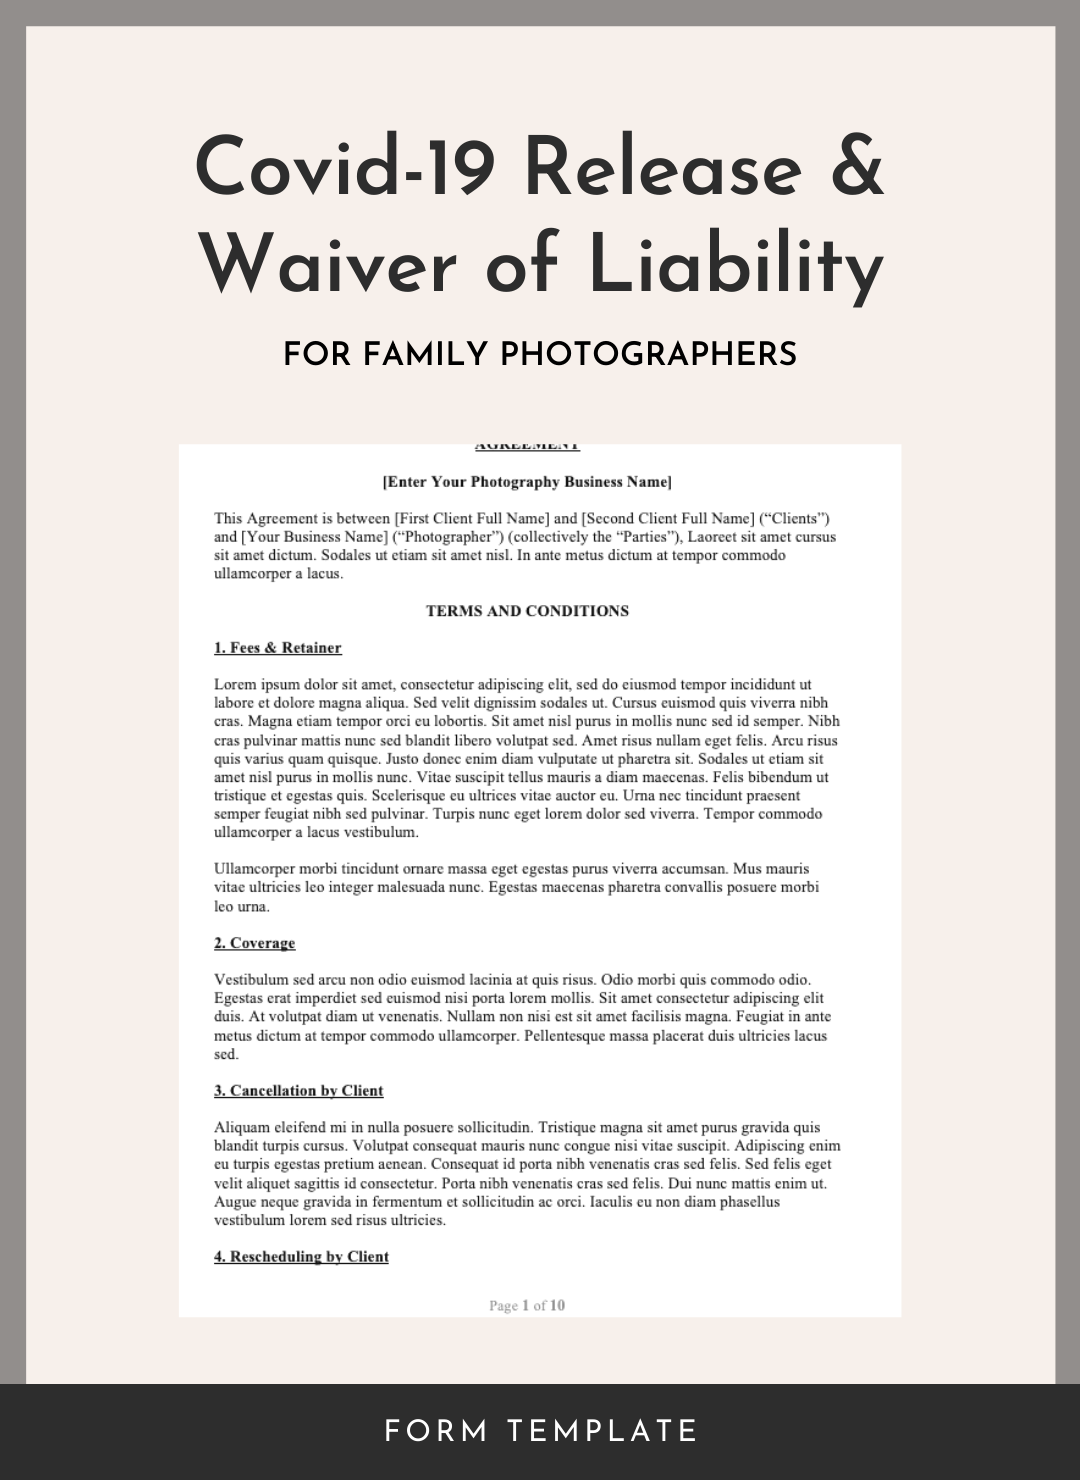 Covid-19 Release and Waiver of Liability for Family Photographers